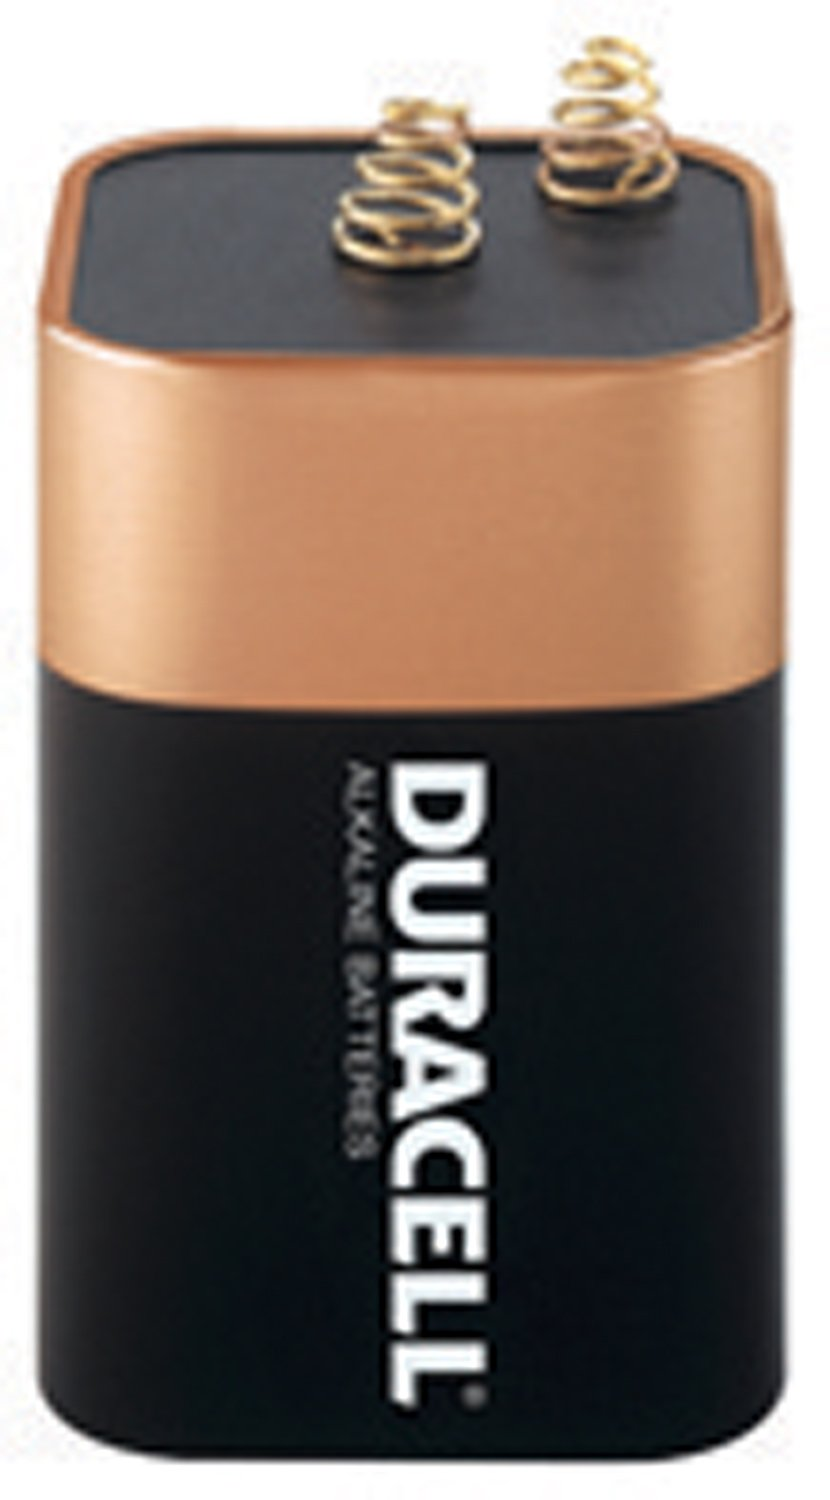 Duracell MN908 6V Non-Rechargeable Alkaline Lantern Batteries (1 Pack) by Duracell